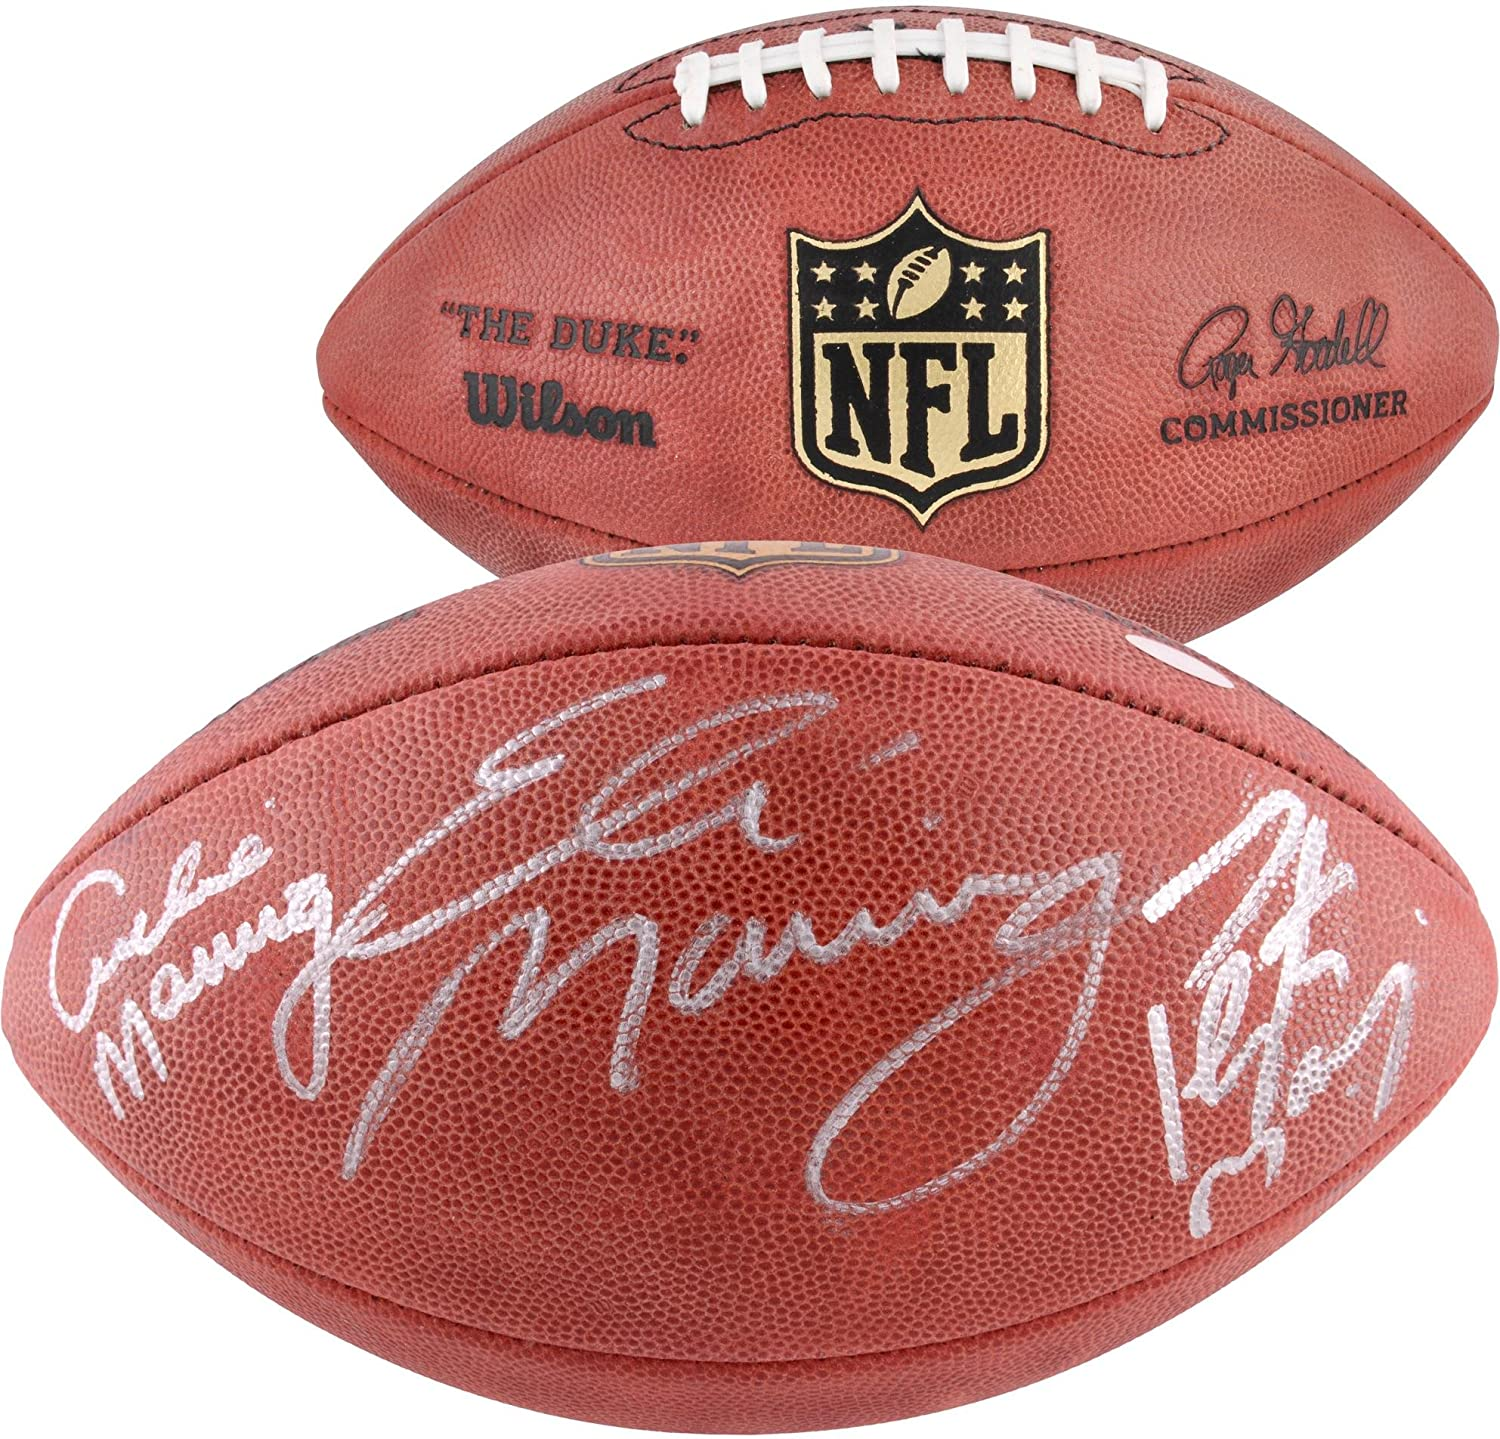 Archie, Eli, and Peyton Manning Autographed Duke Pro Football - Autographed Footballs